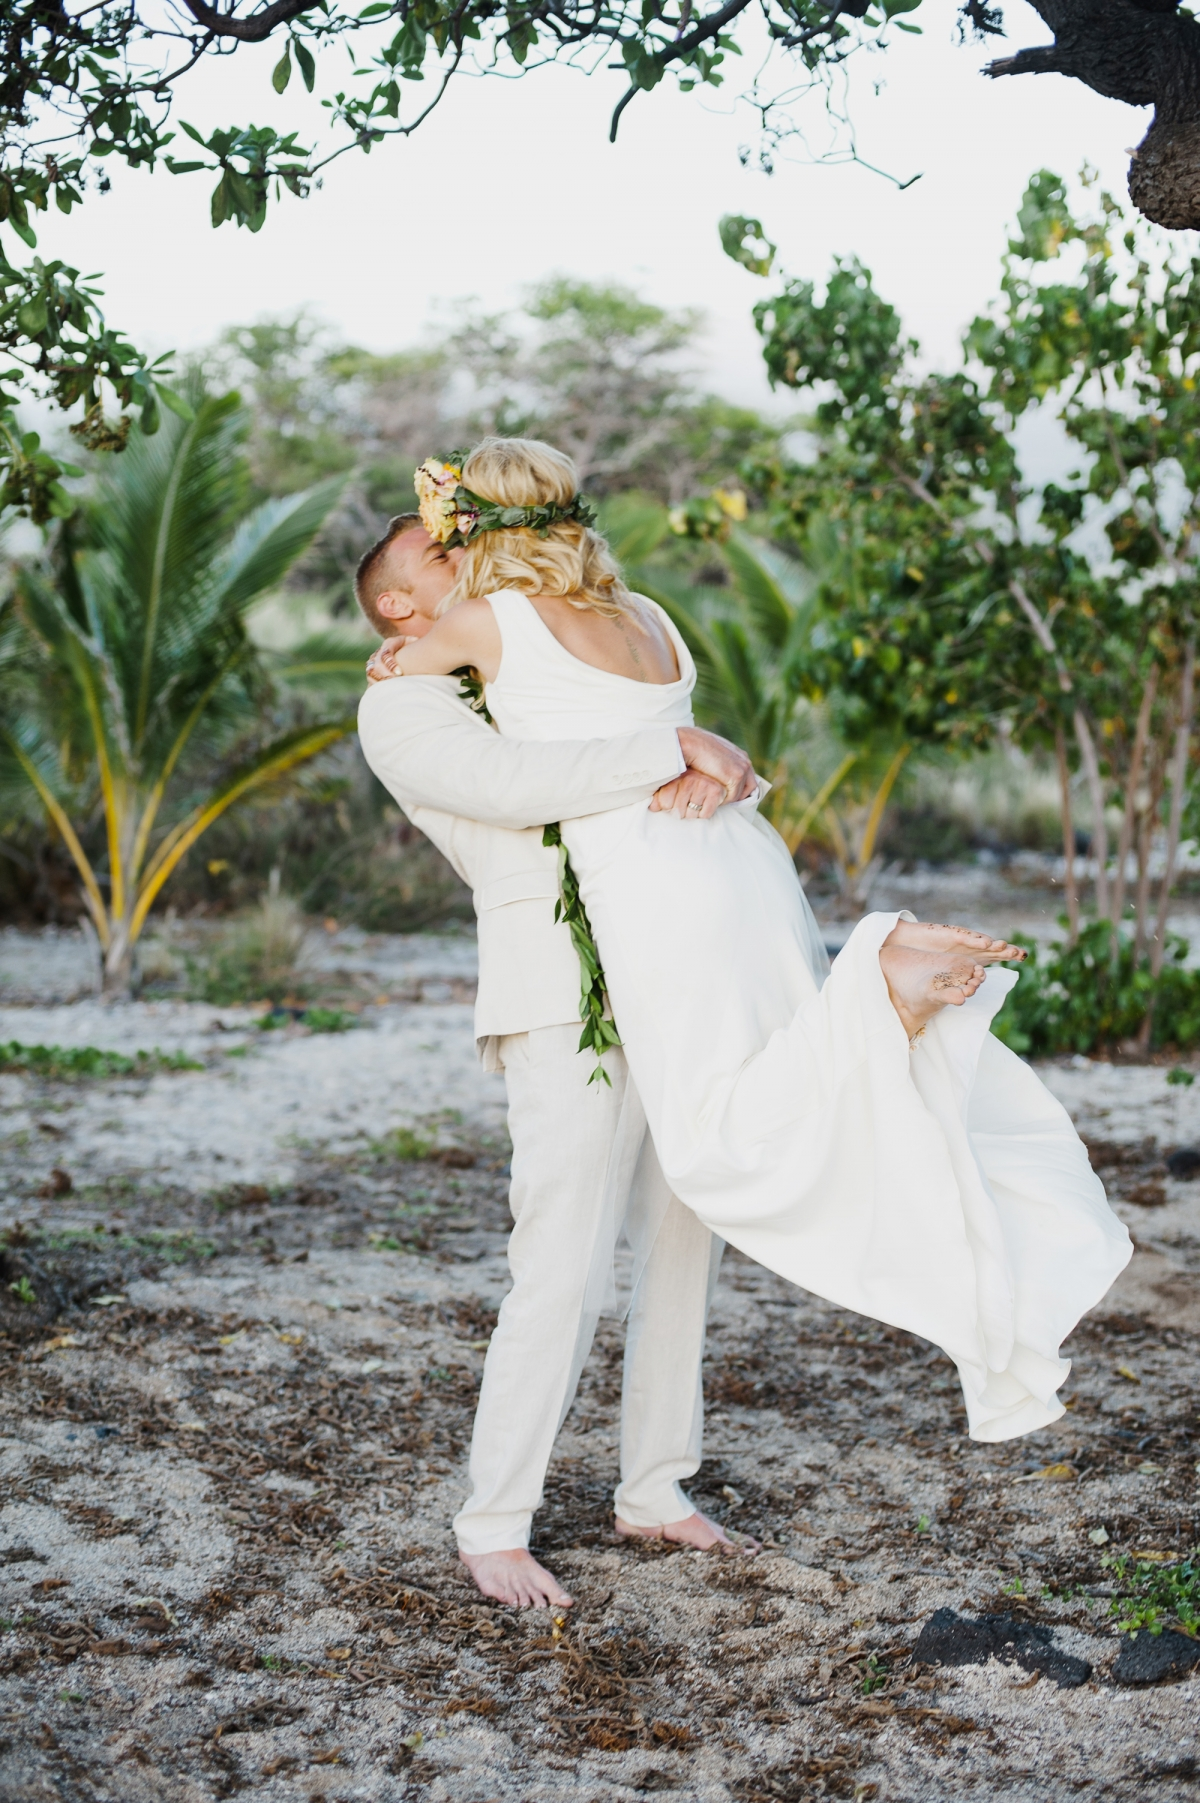 Washington Beth And Tyler Jetted To Hawaii S Island Wed Barefoot On The Beach Along Kona Coast They Designed A Beautiful Intimate